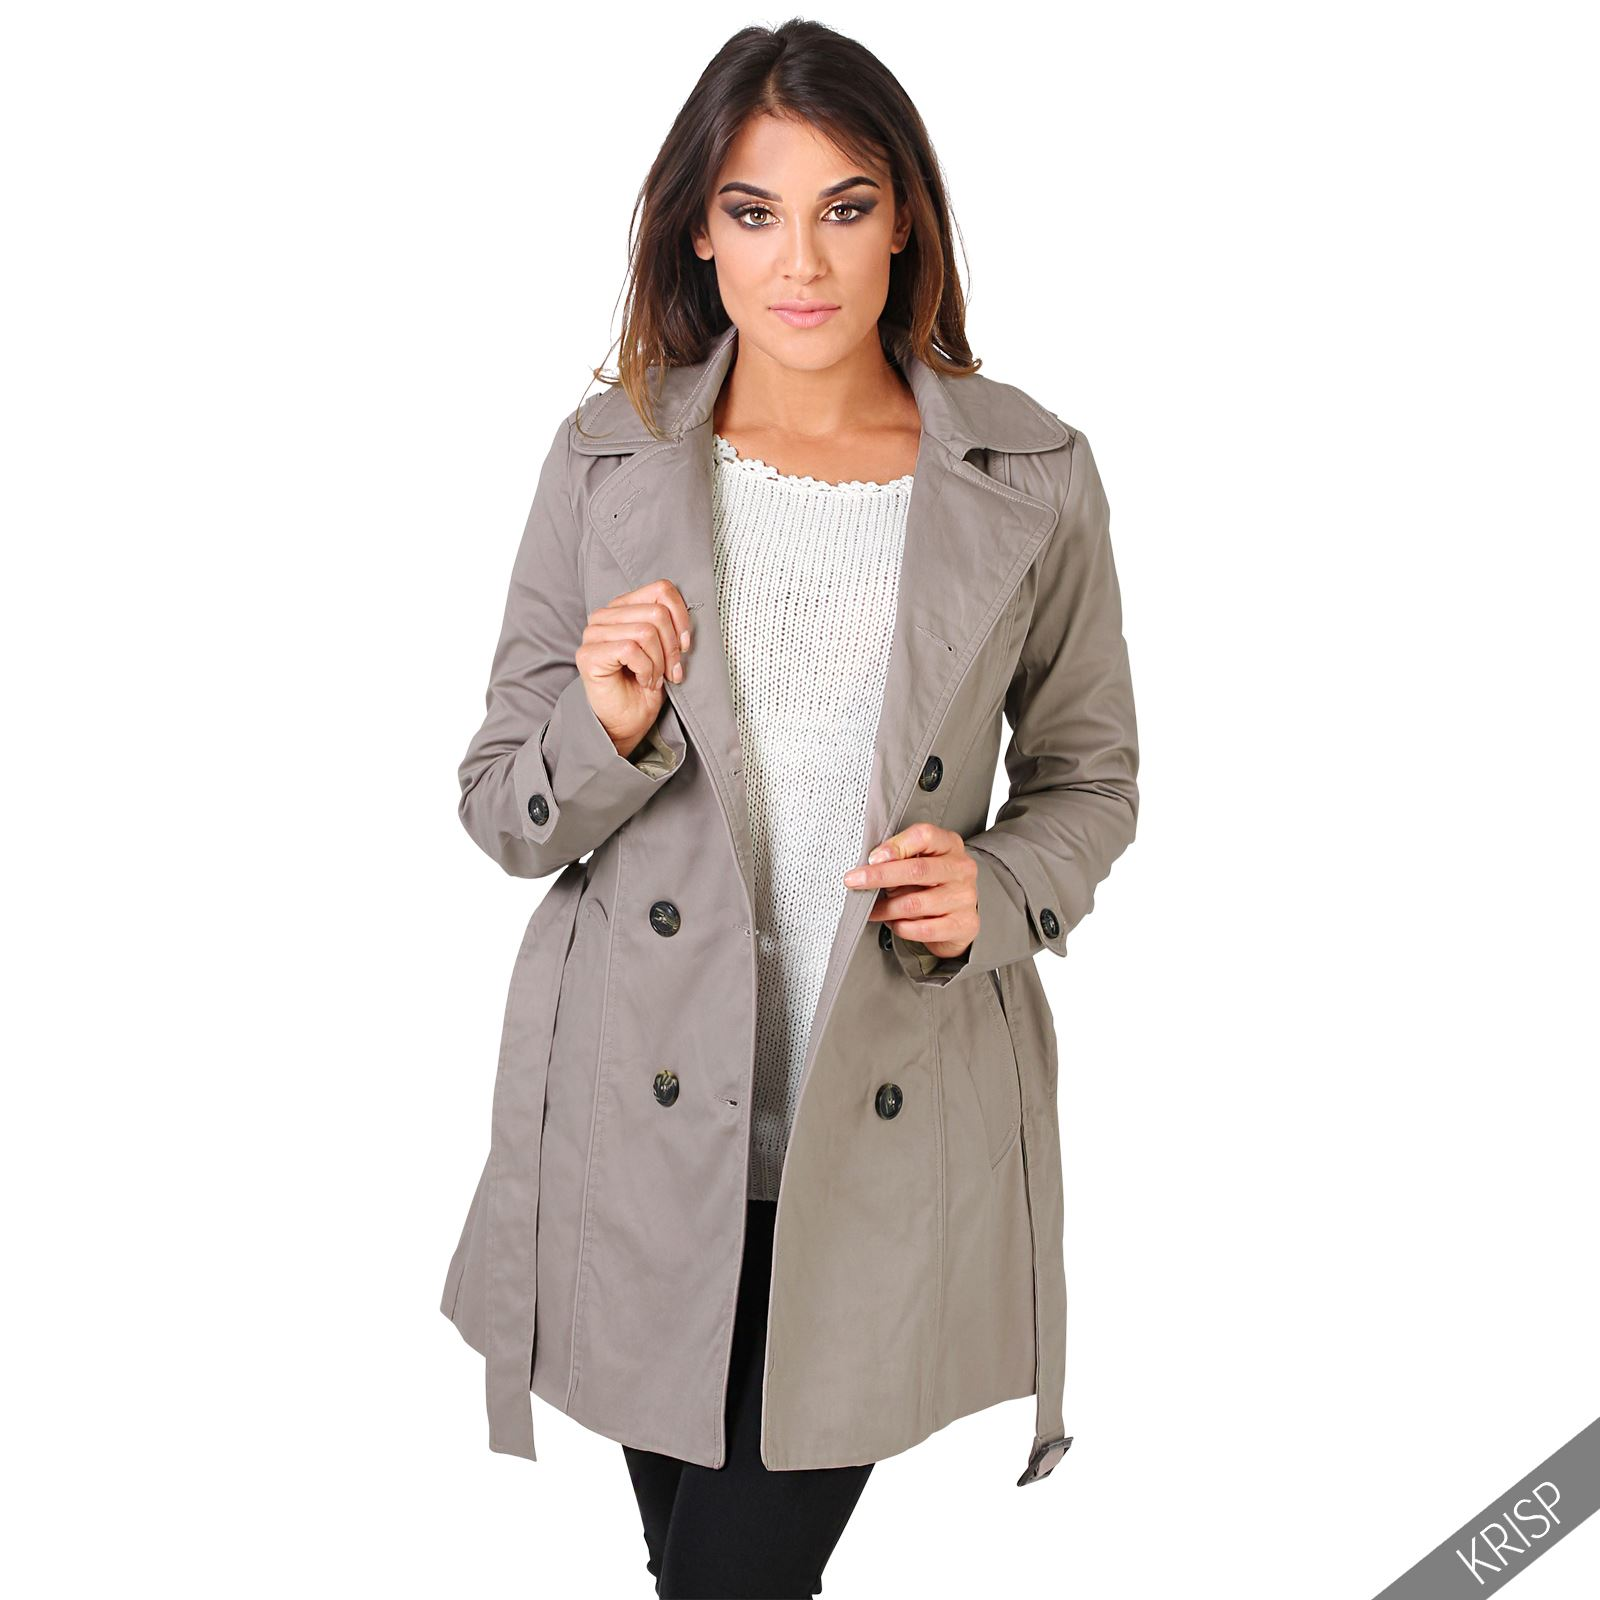 Find great deals on eBay for ladies burberry trench coat. Shop with confidence.